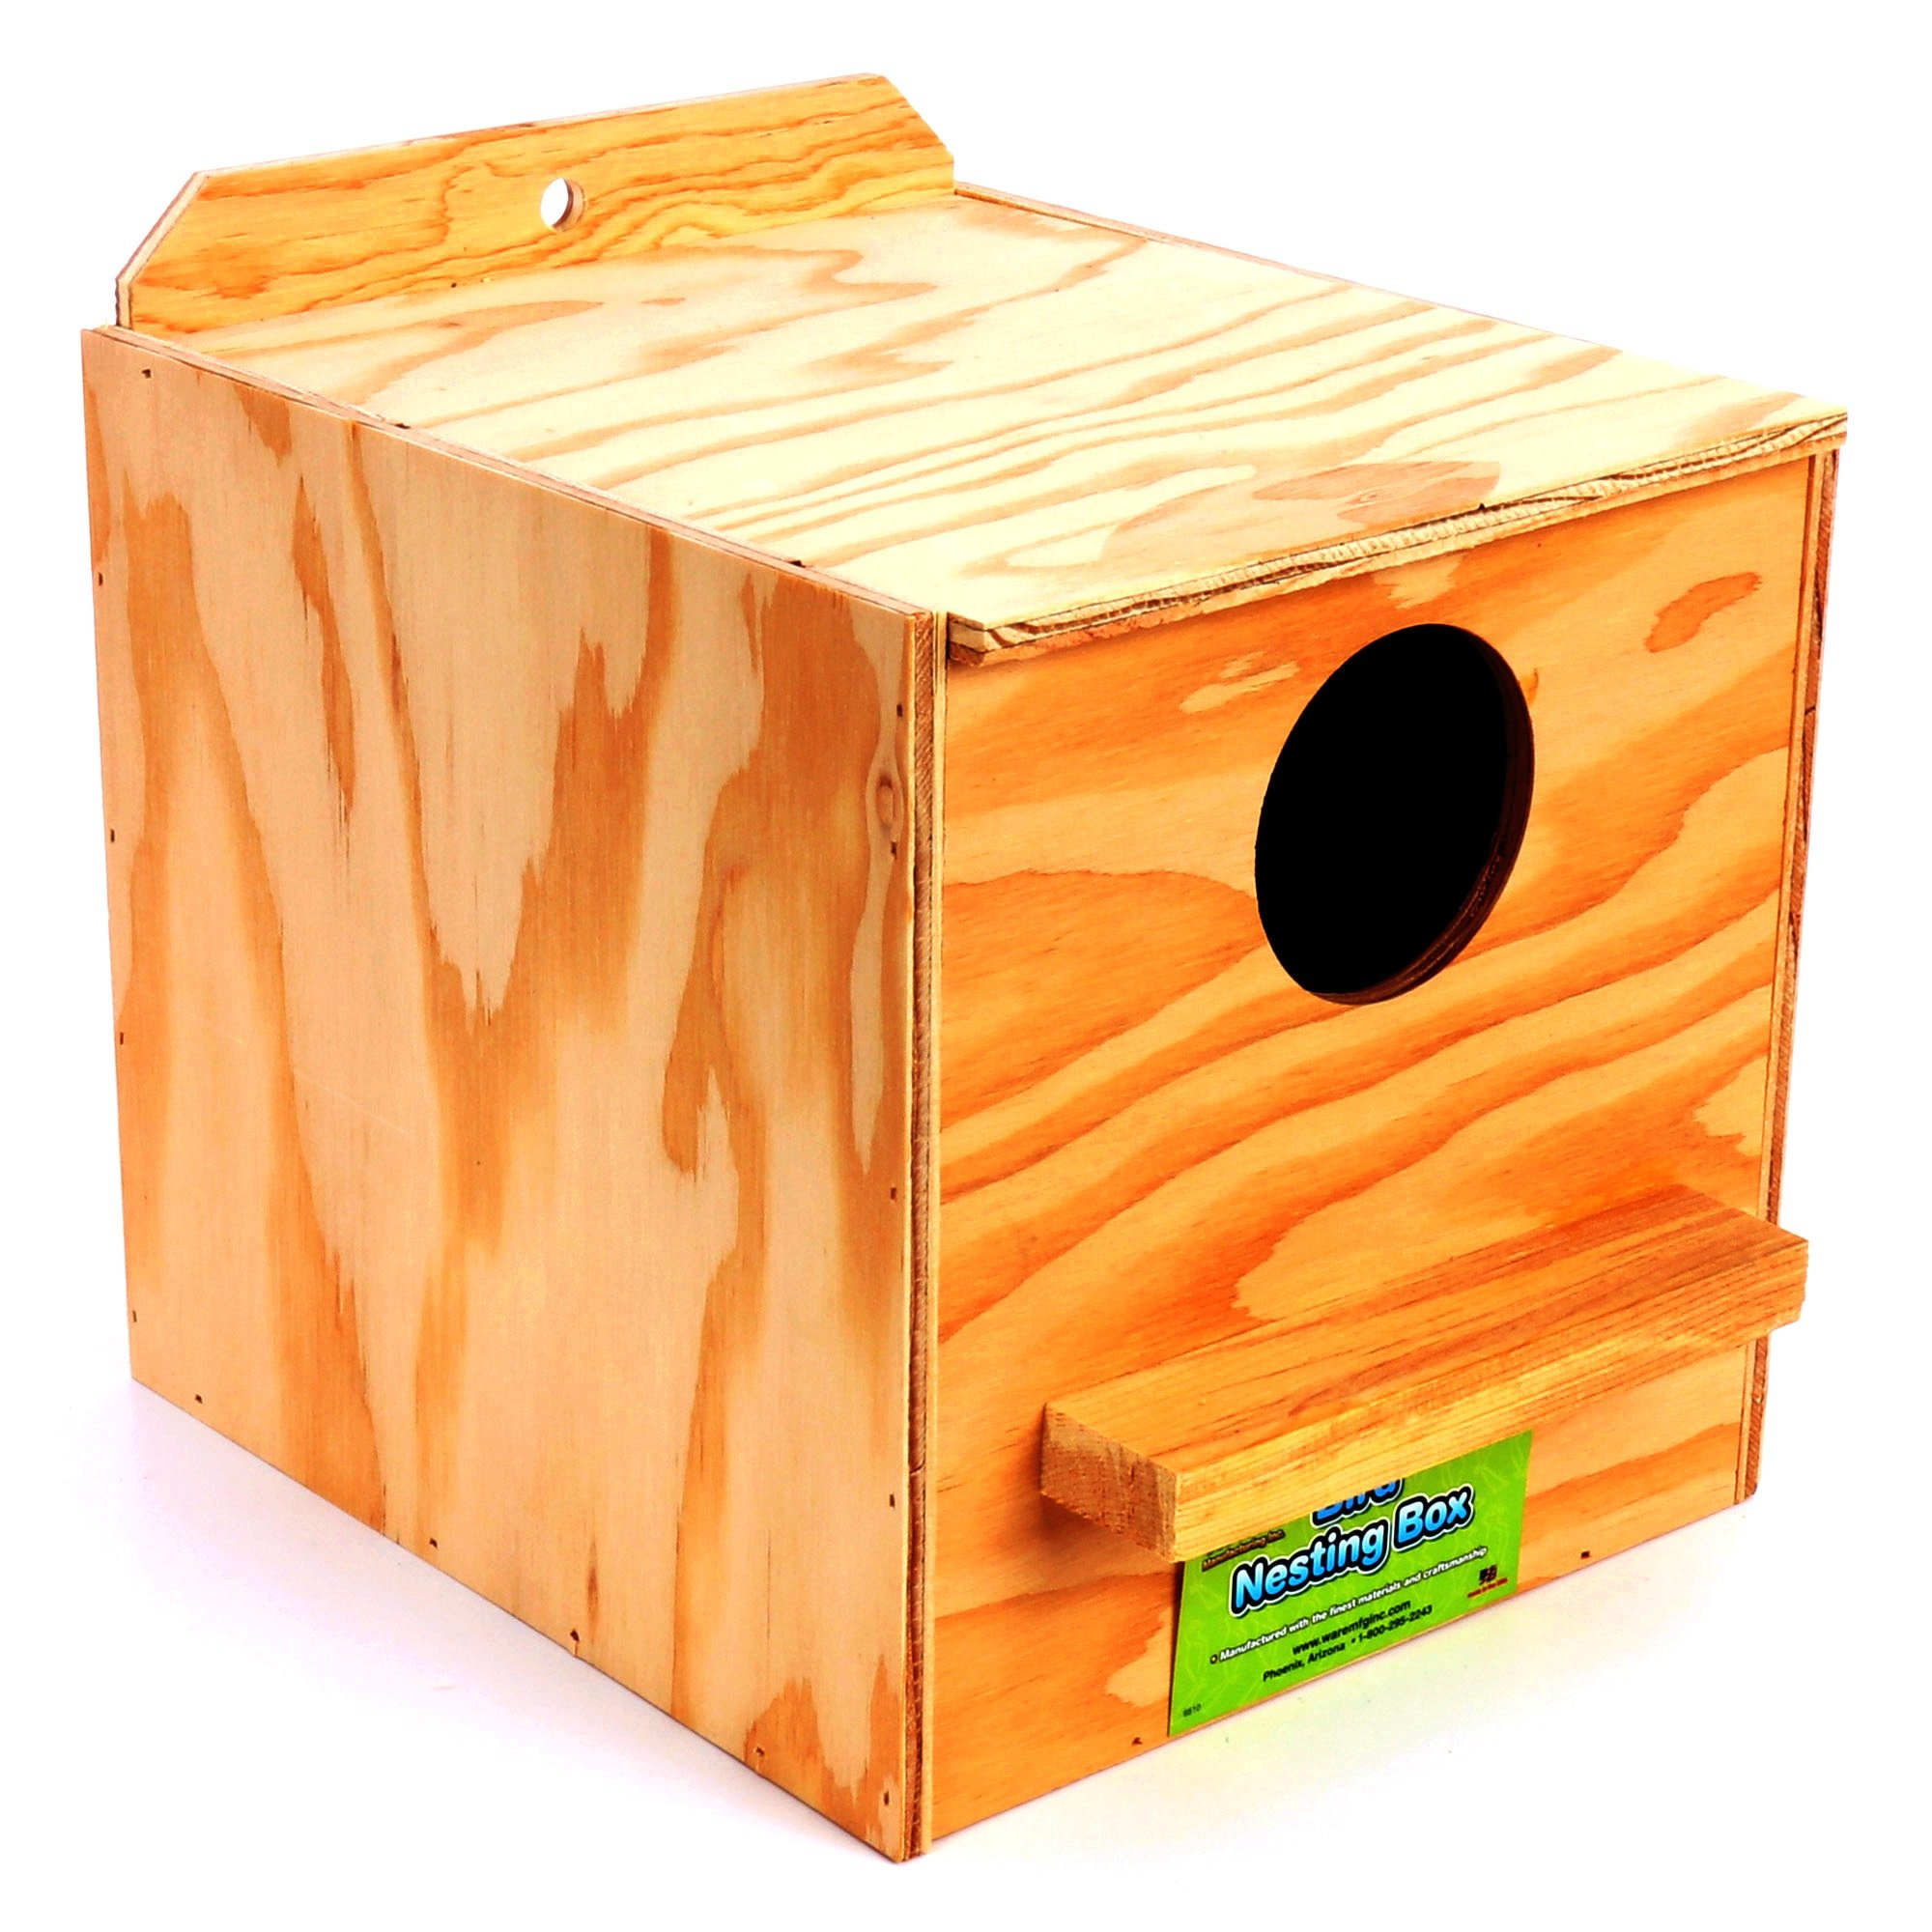 Ware Manufacturing Nest Box, Perfectly Sized for Cockatiels, Natural Wood by Ware Manufacturing